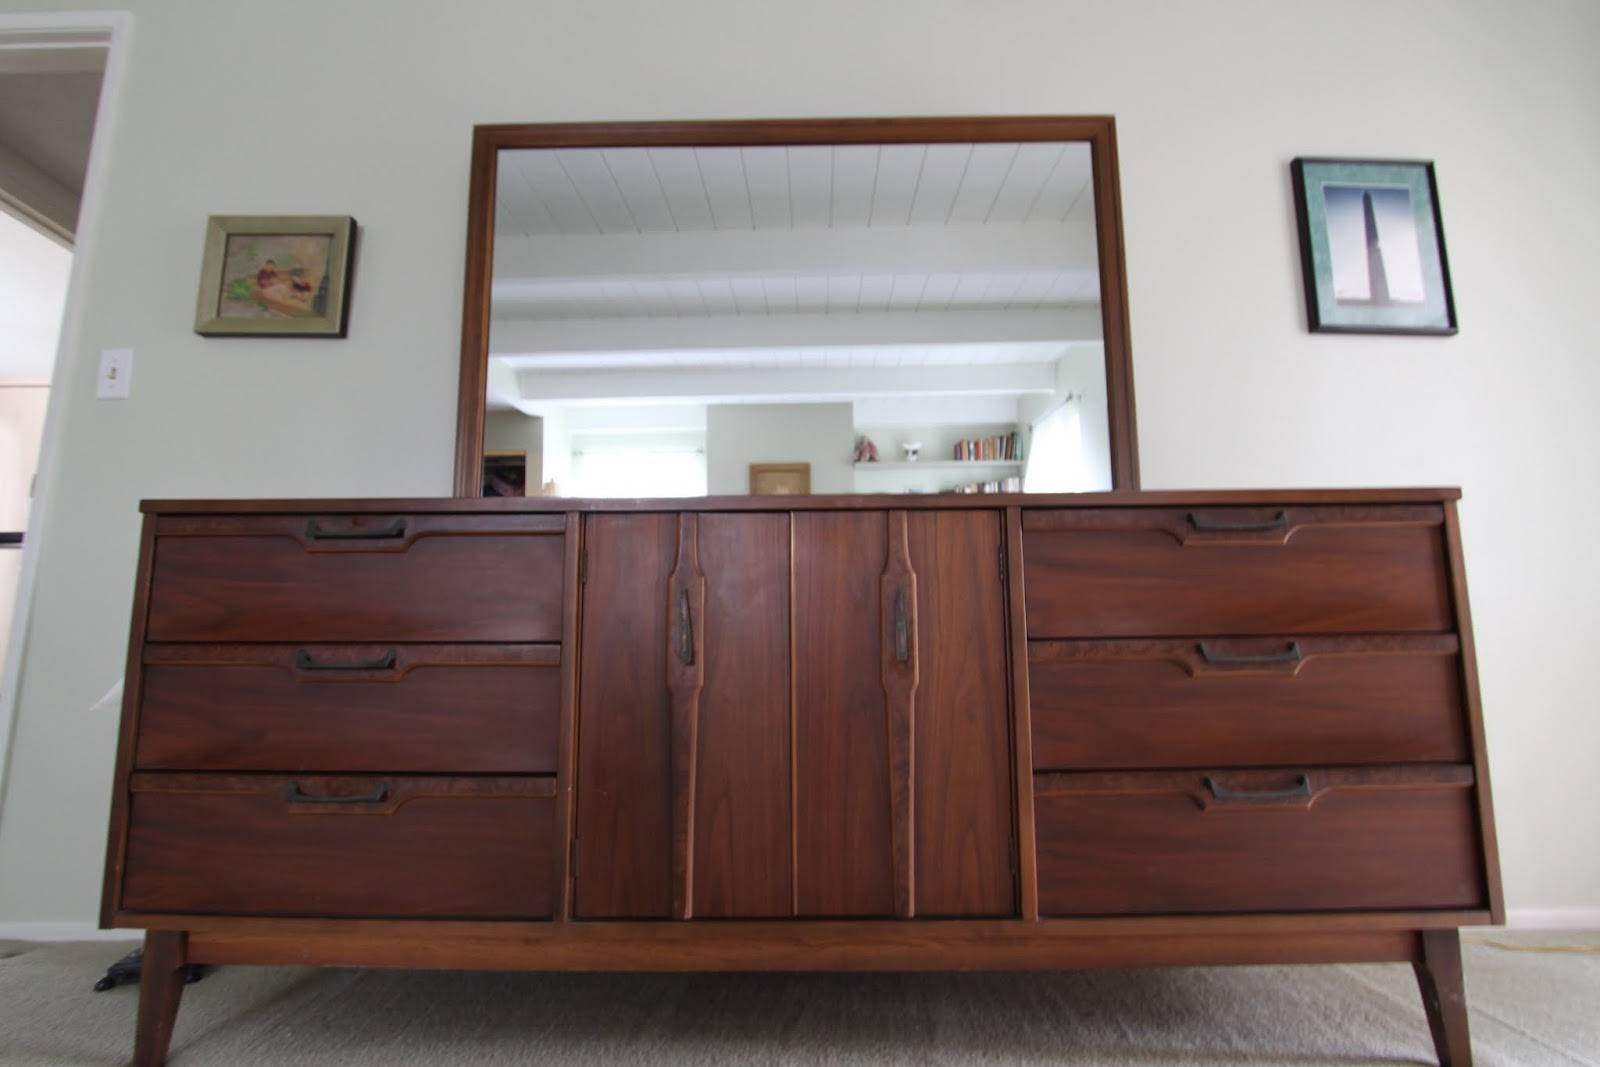 Detail on handles mid century modern dresser lenoir house a division of broyhill